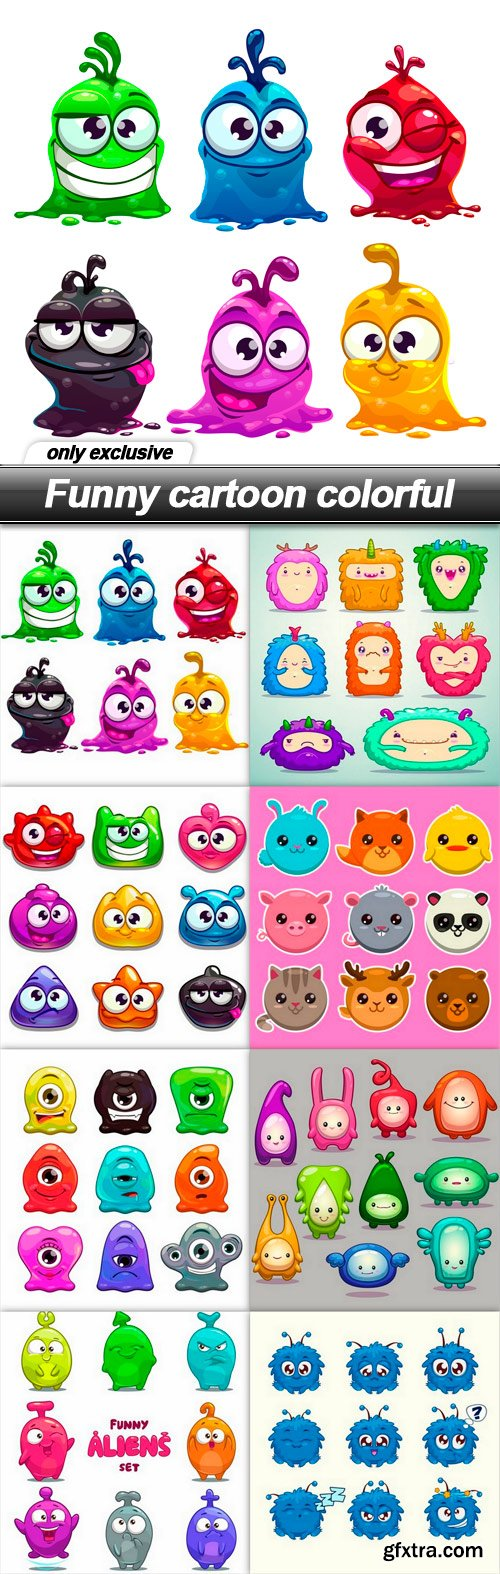 Funny cartoon colorful - 8 EPS